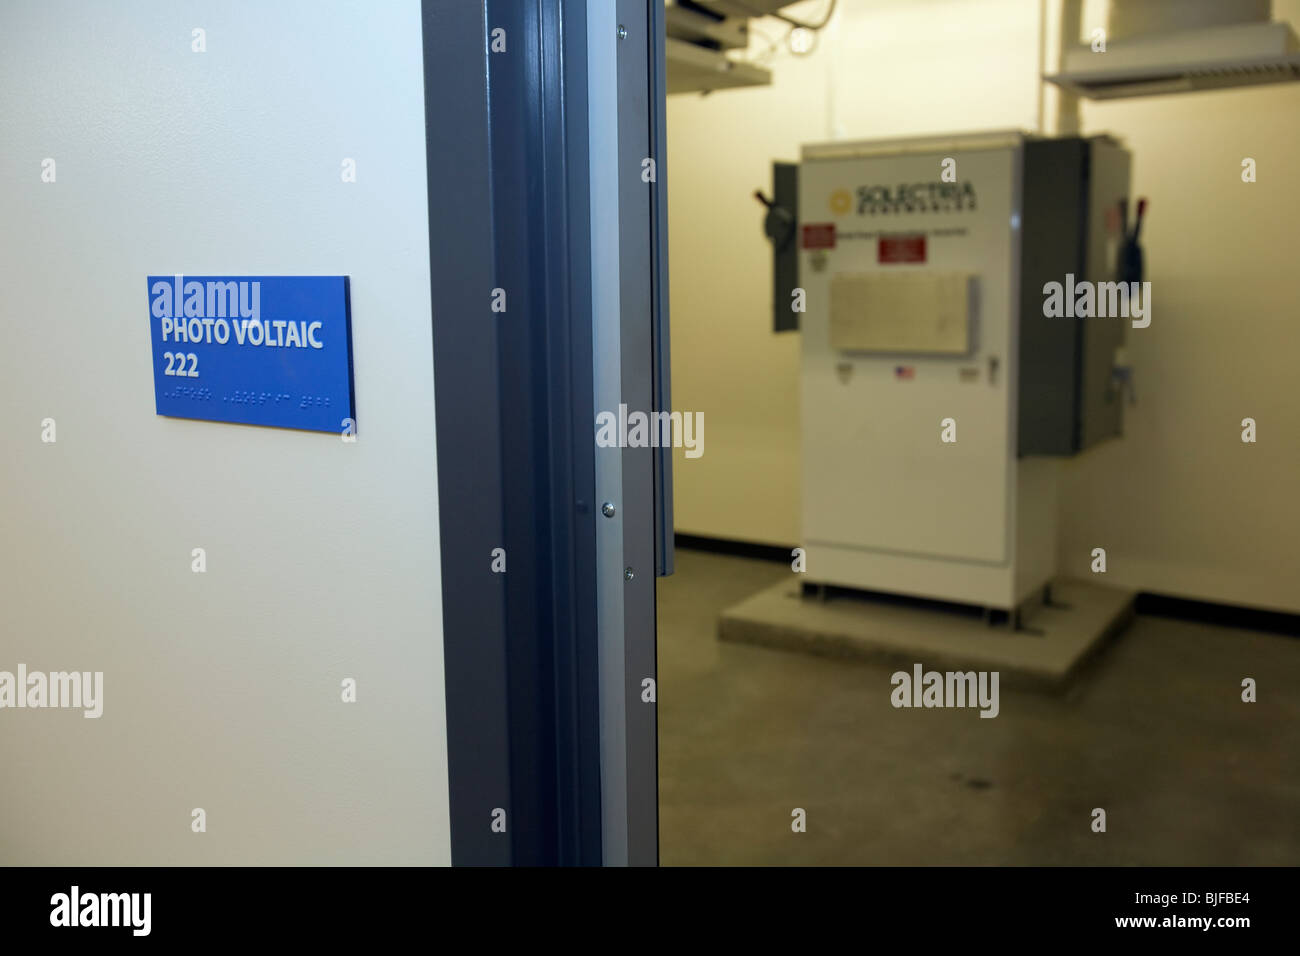 Grid-Tied Photovoltaic Inverter in Control room of Big Blue Bus Terminal, Santa Monica - Stock Image